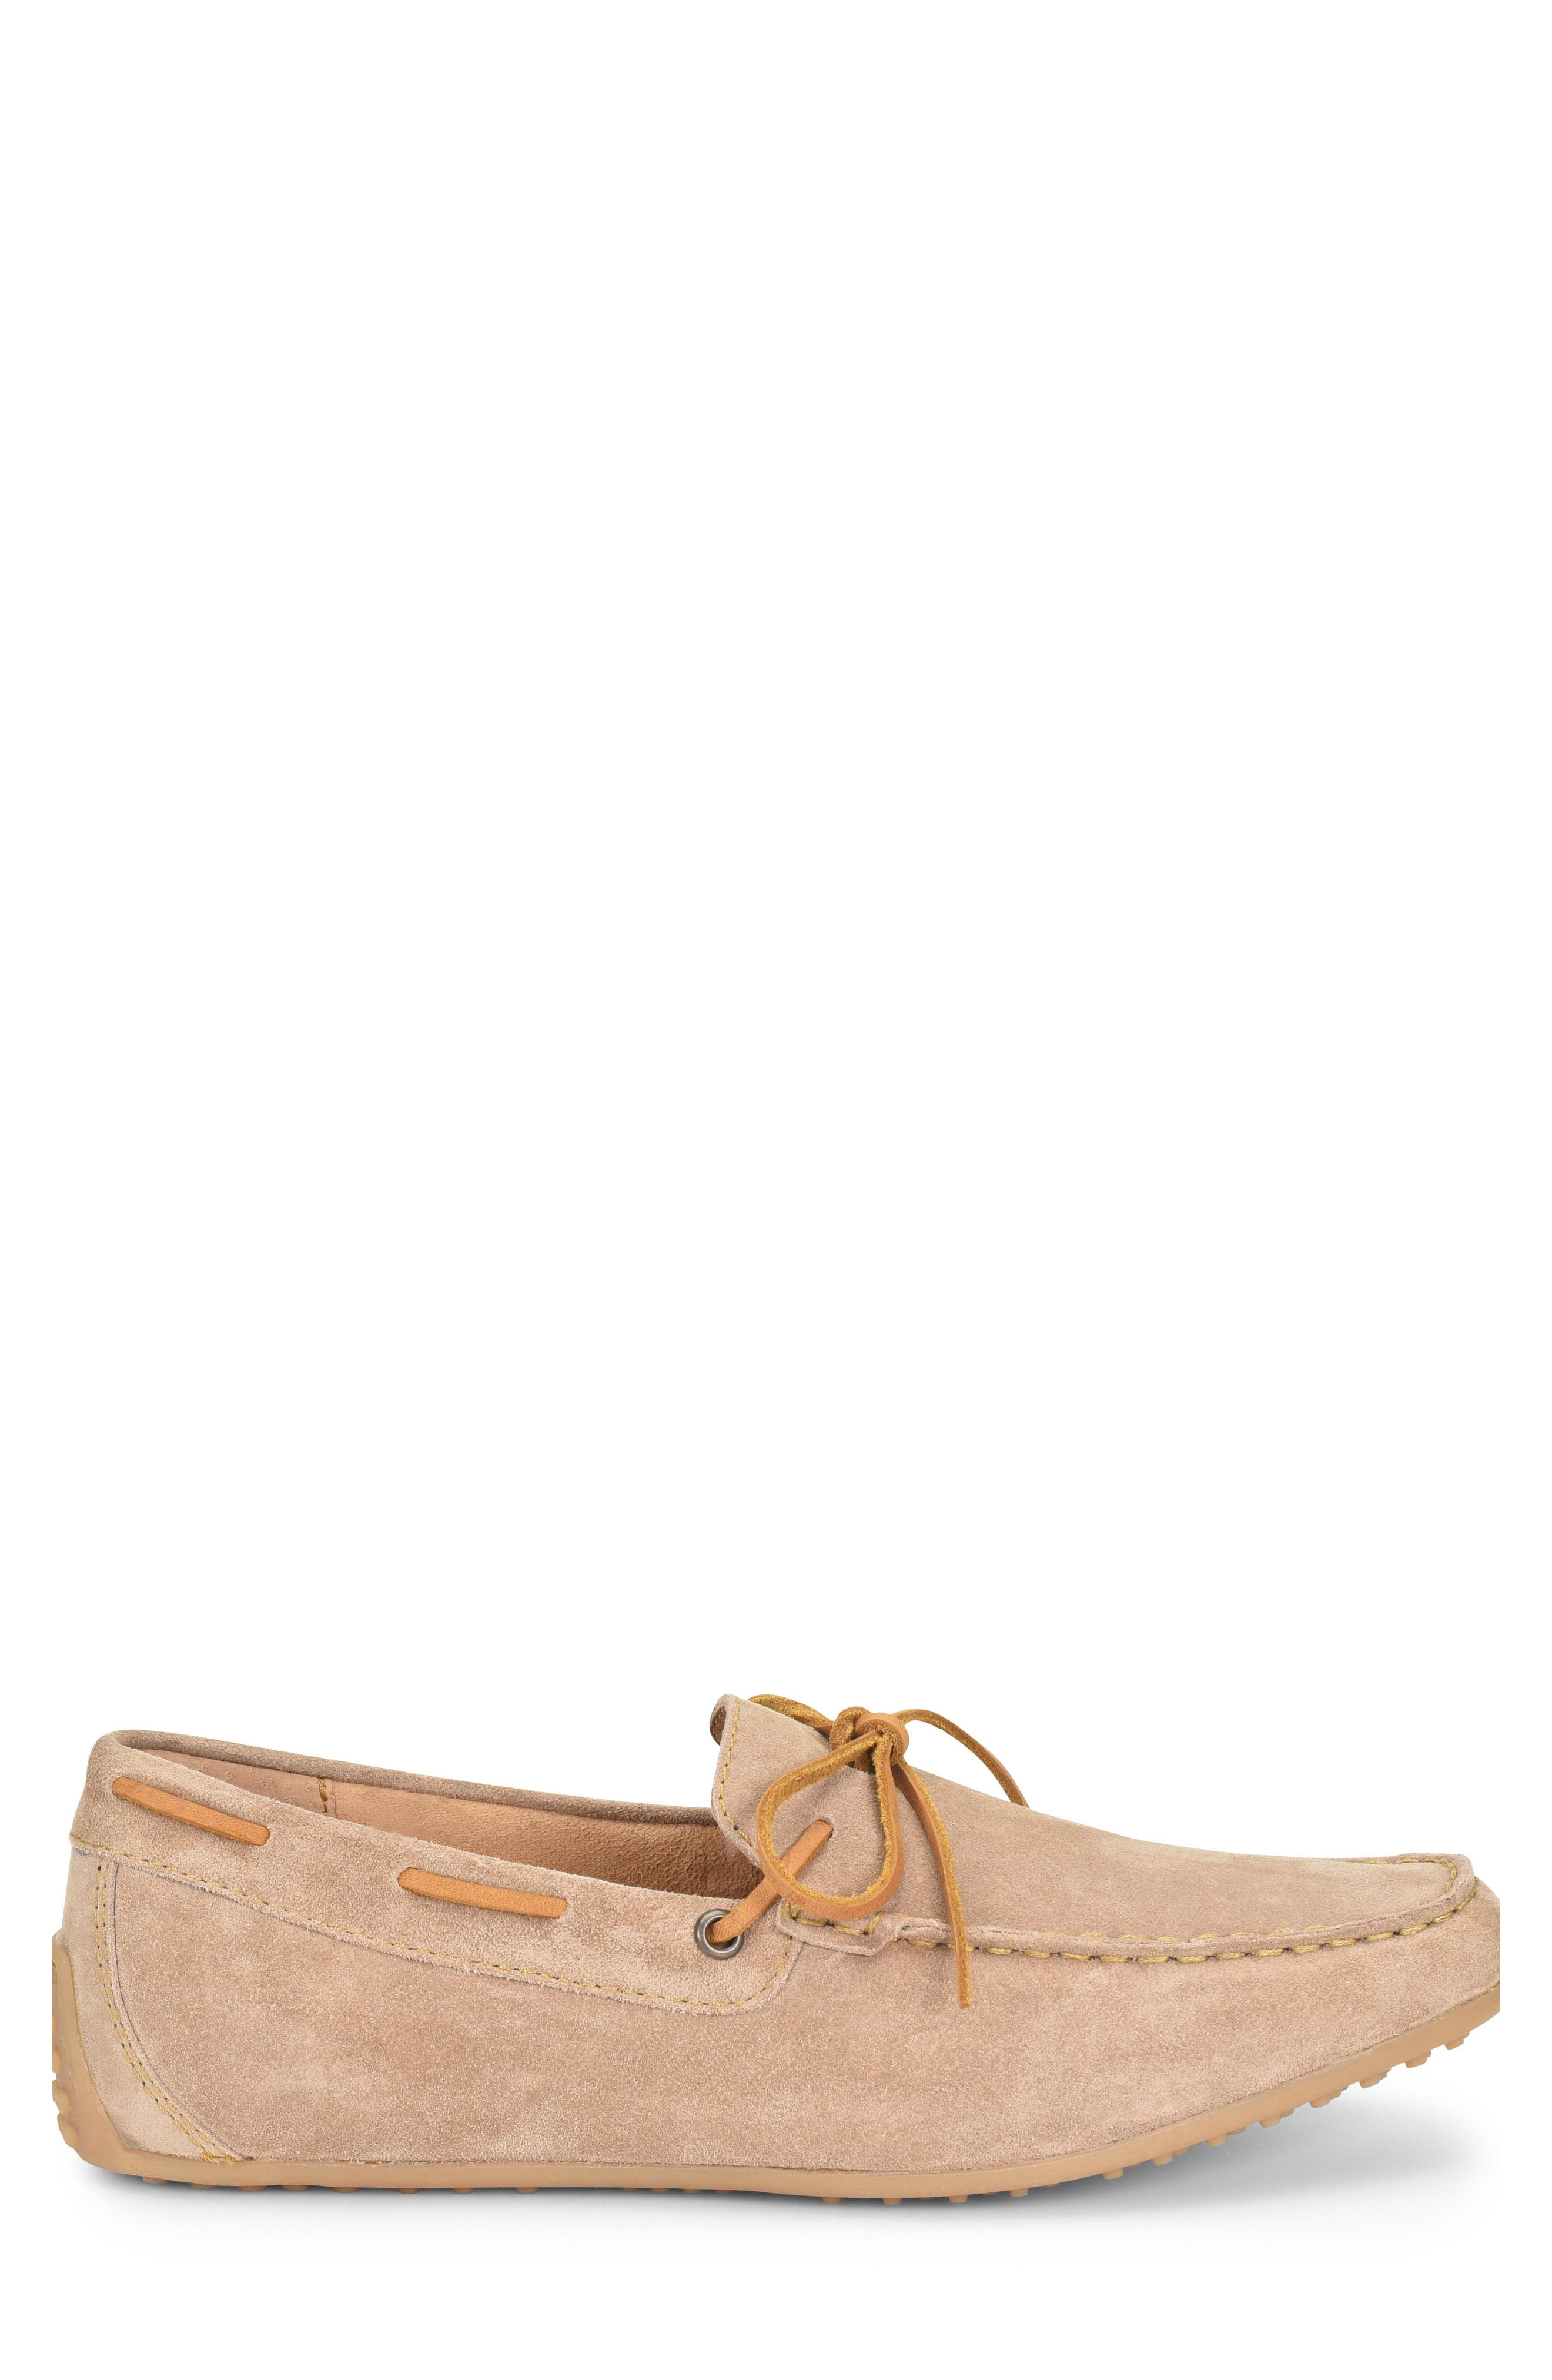 Virgo Driving Shoe,                             Alternate thumbnail 3, color,                             Taupe Suede